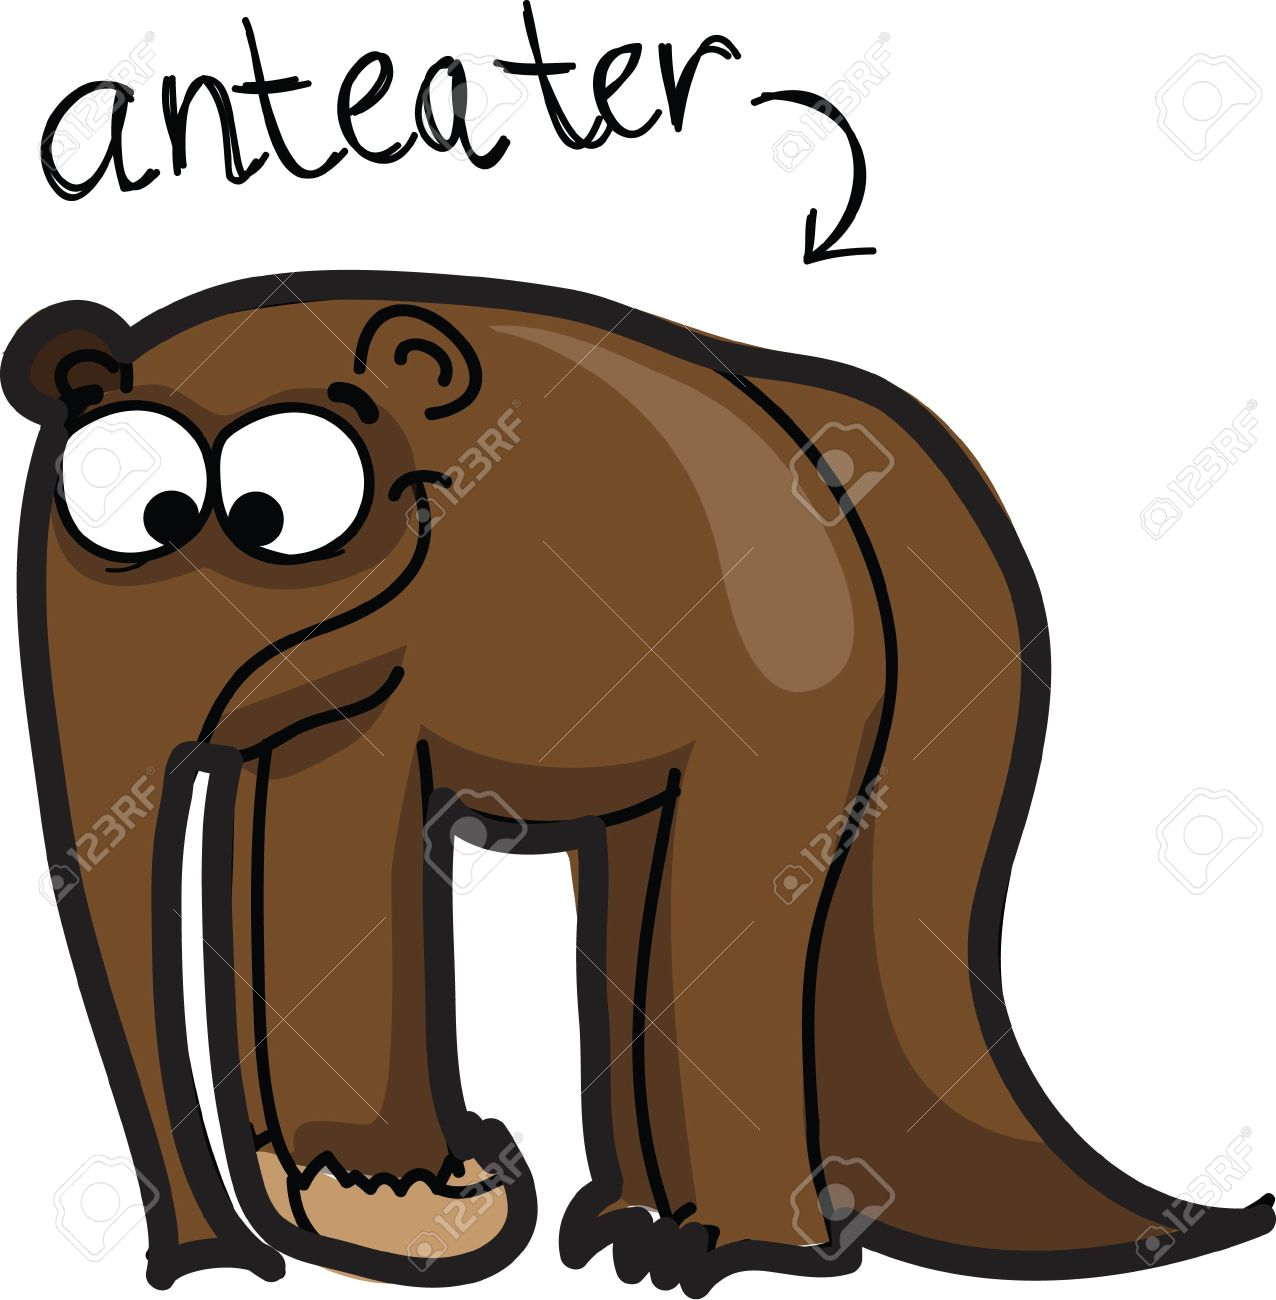 1276x1300 Revealing Cartoon Ant Eater Cute Anteater Royalty Free Cliparts